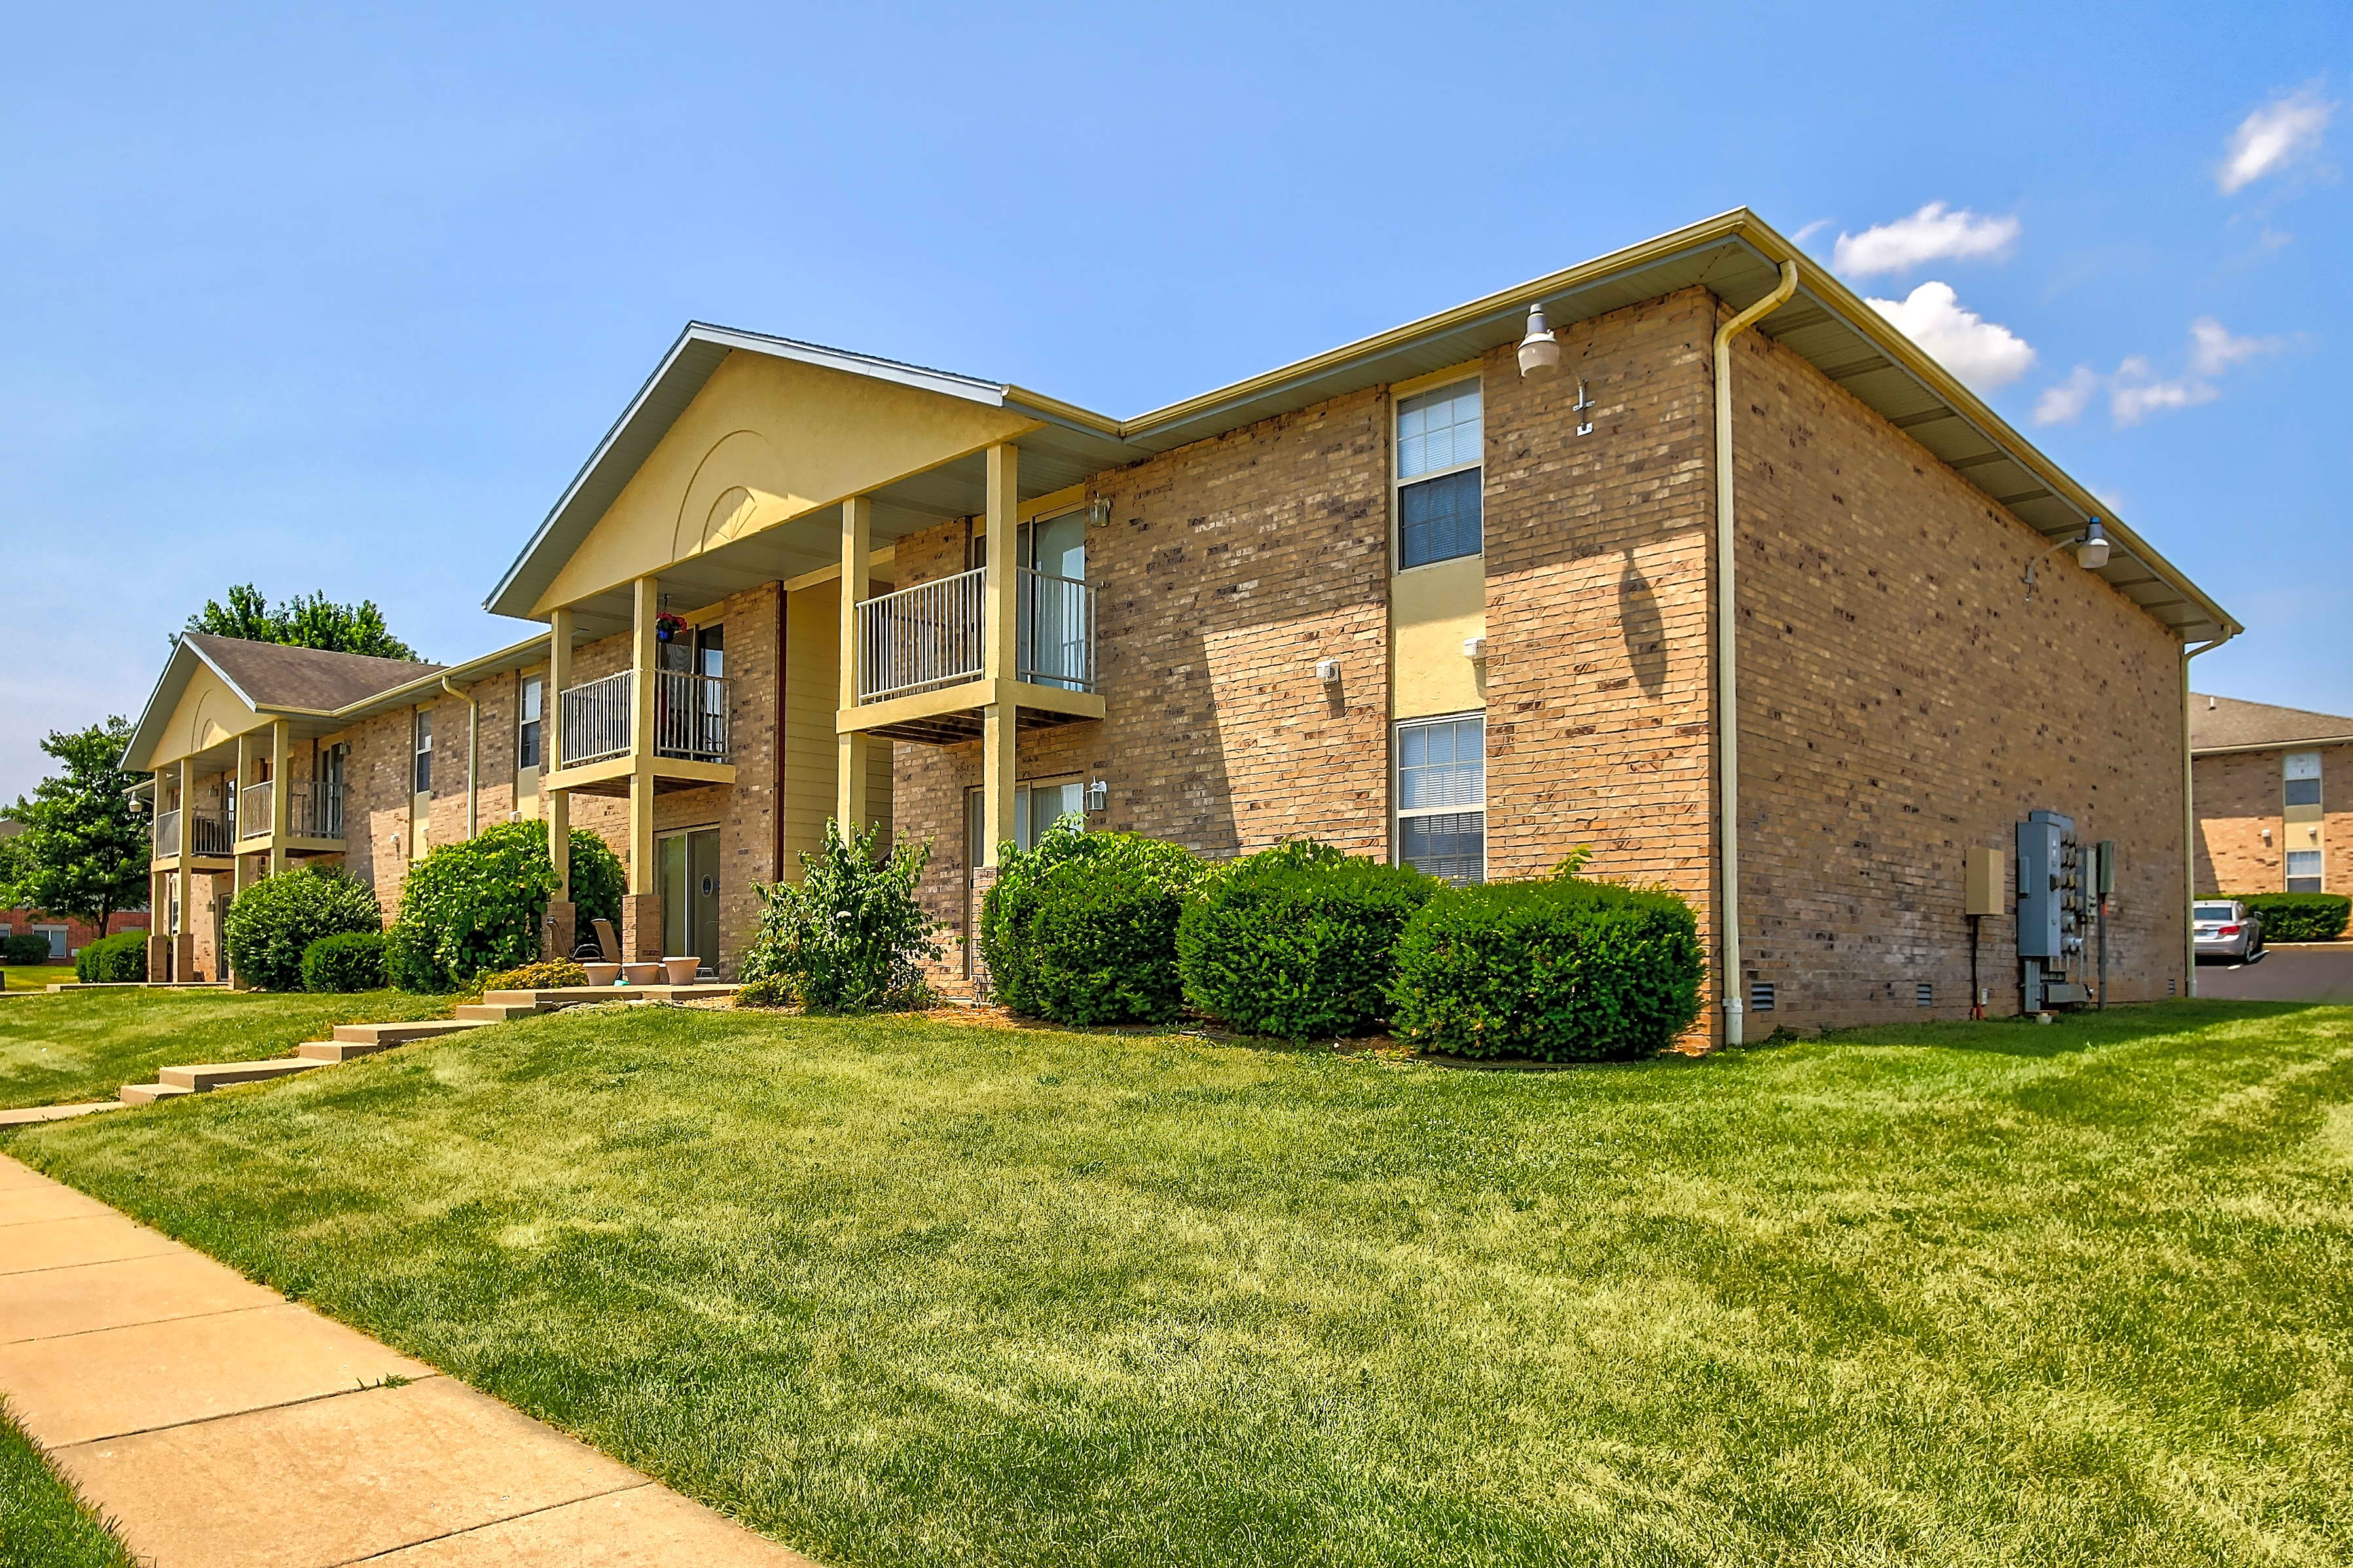 Apartments Near Missouri College of Cosmetology North Sunset Woodland for Missouri College of Cosmetology North Students in Springfield, MO